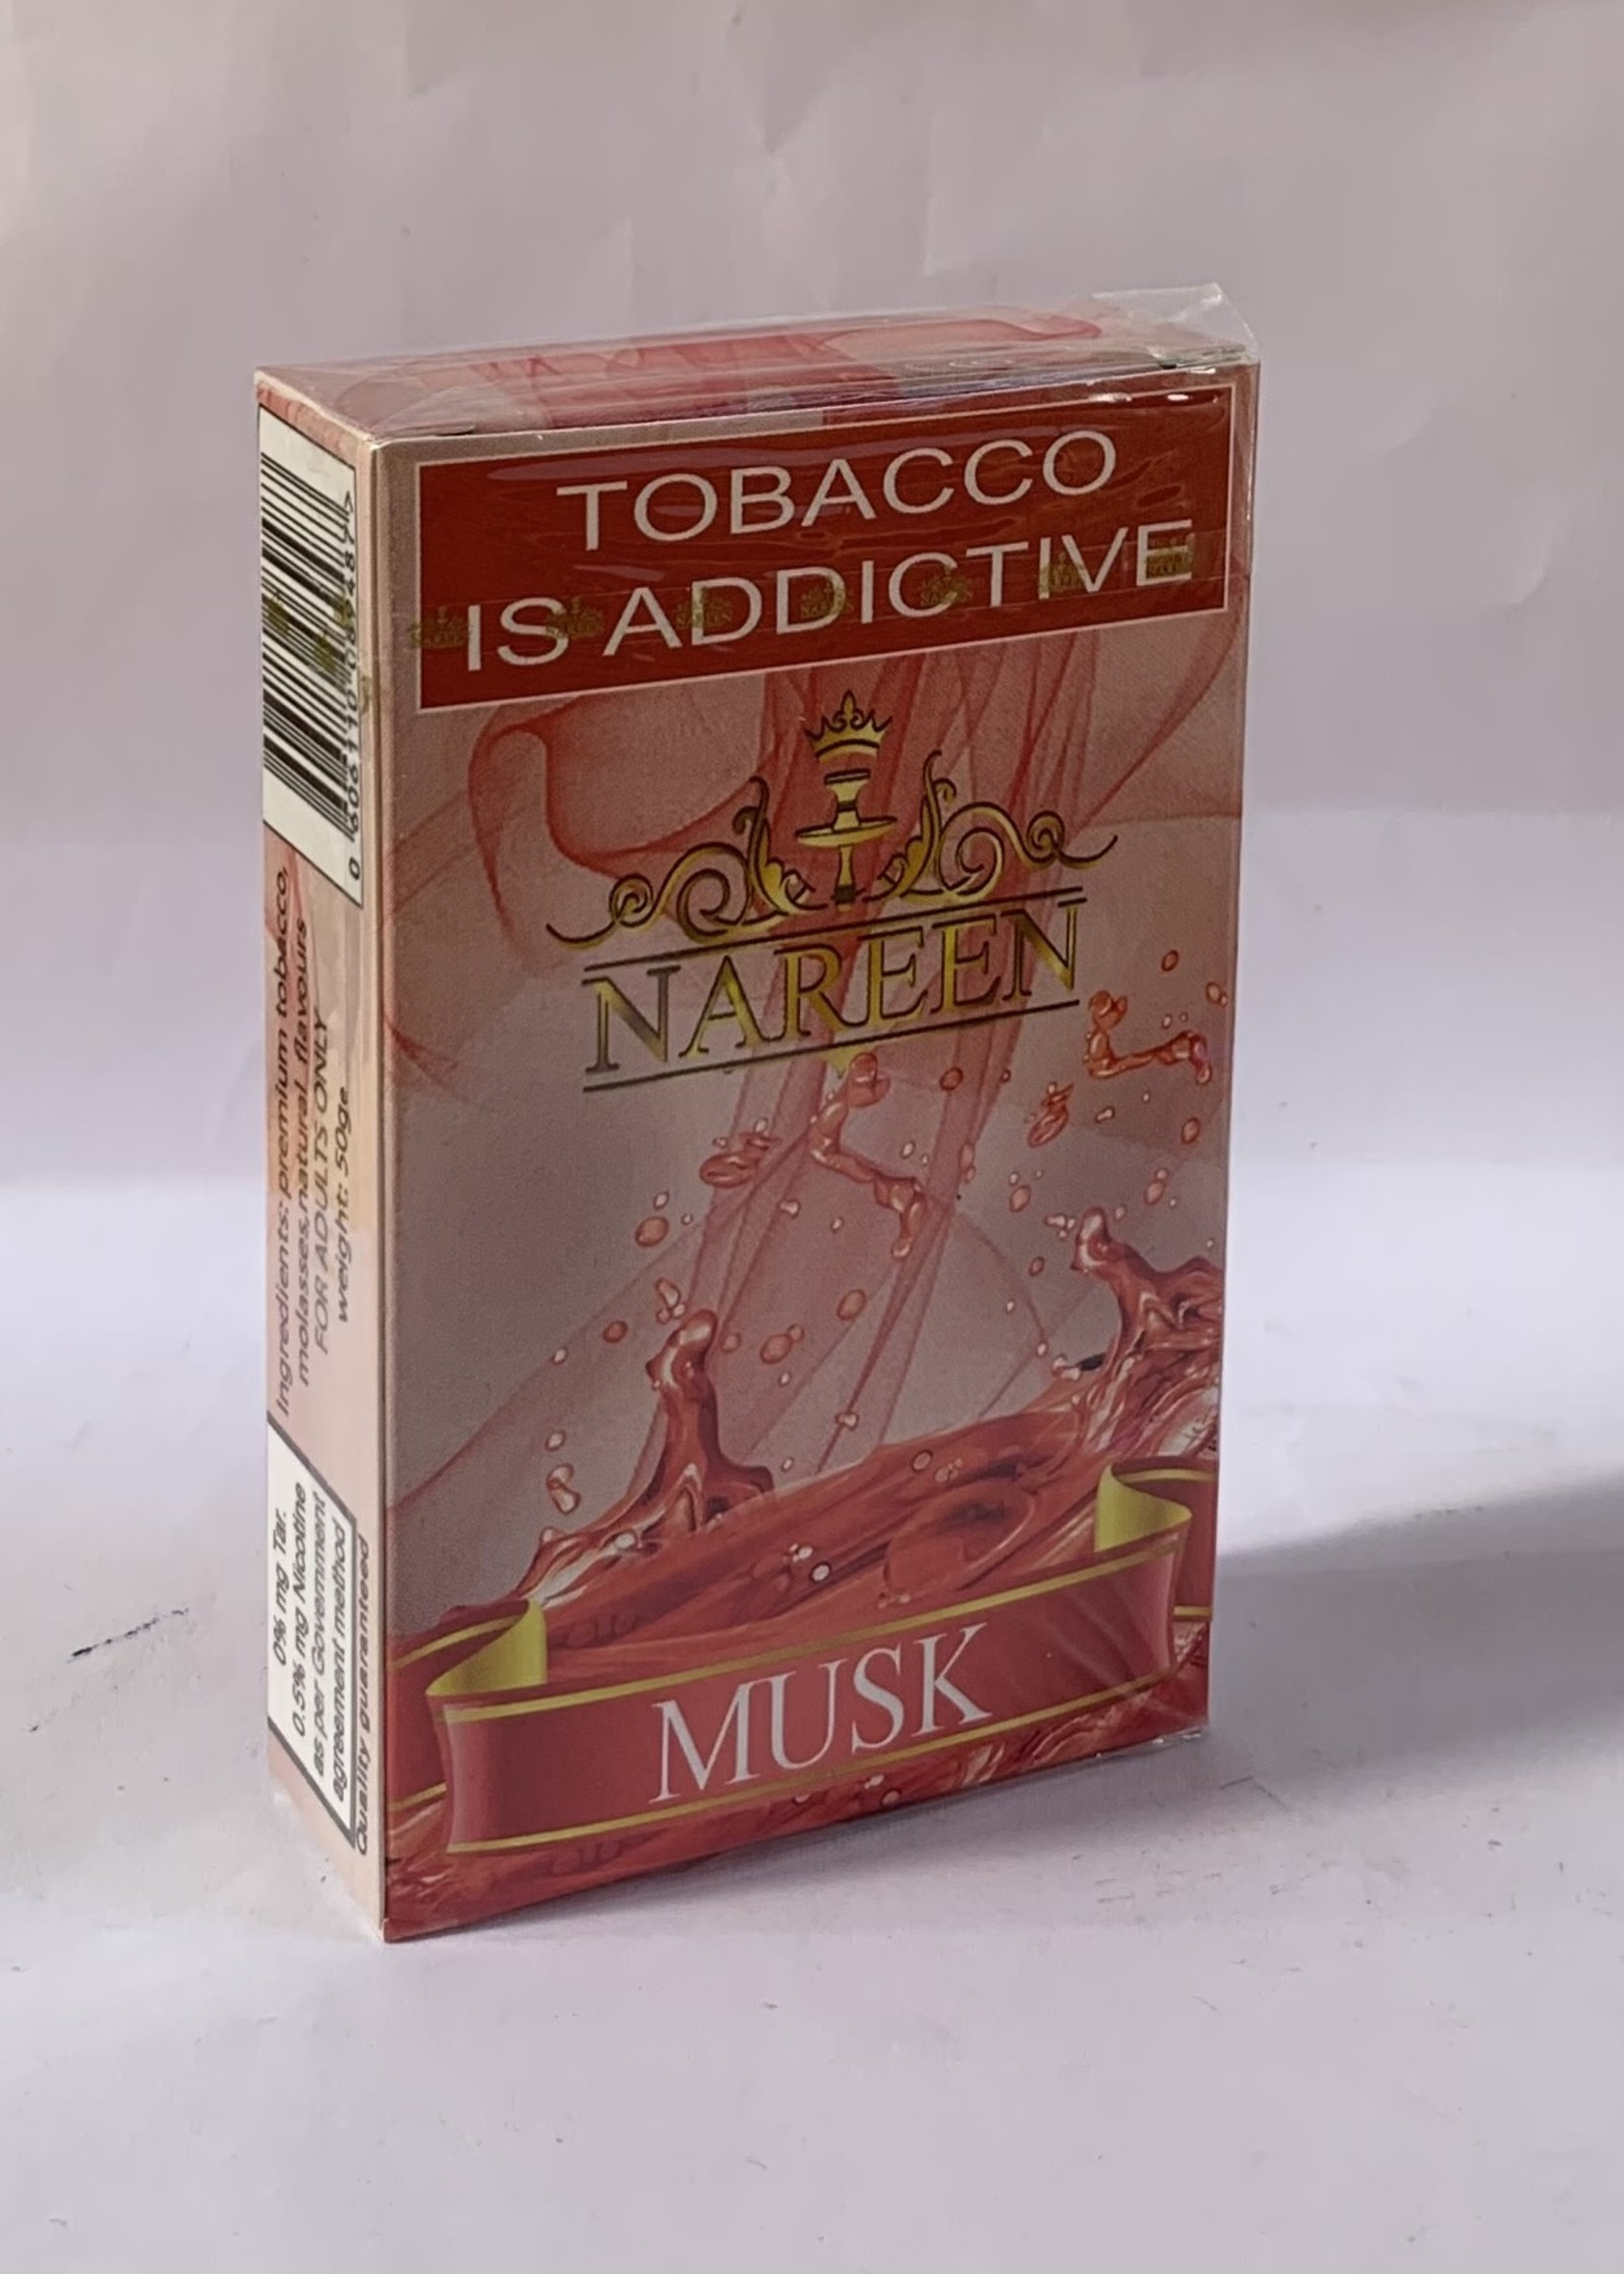 Nareen hubbly flavour - musk